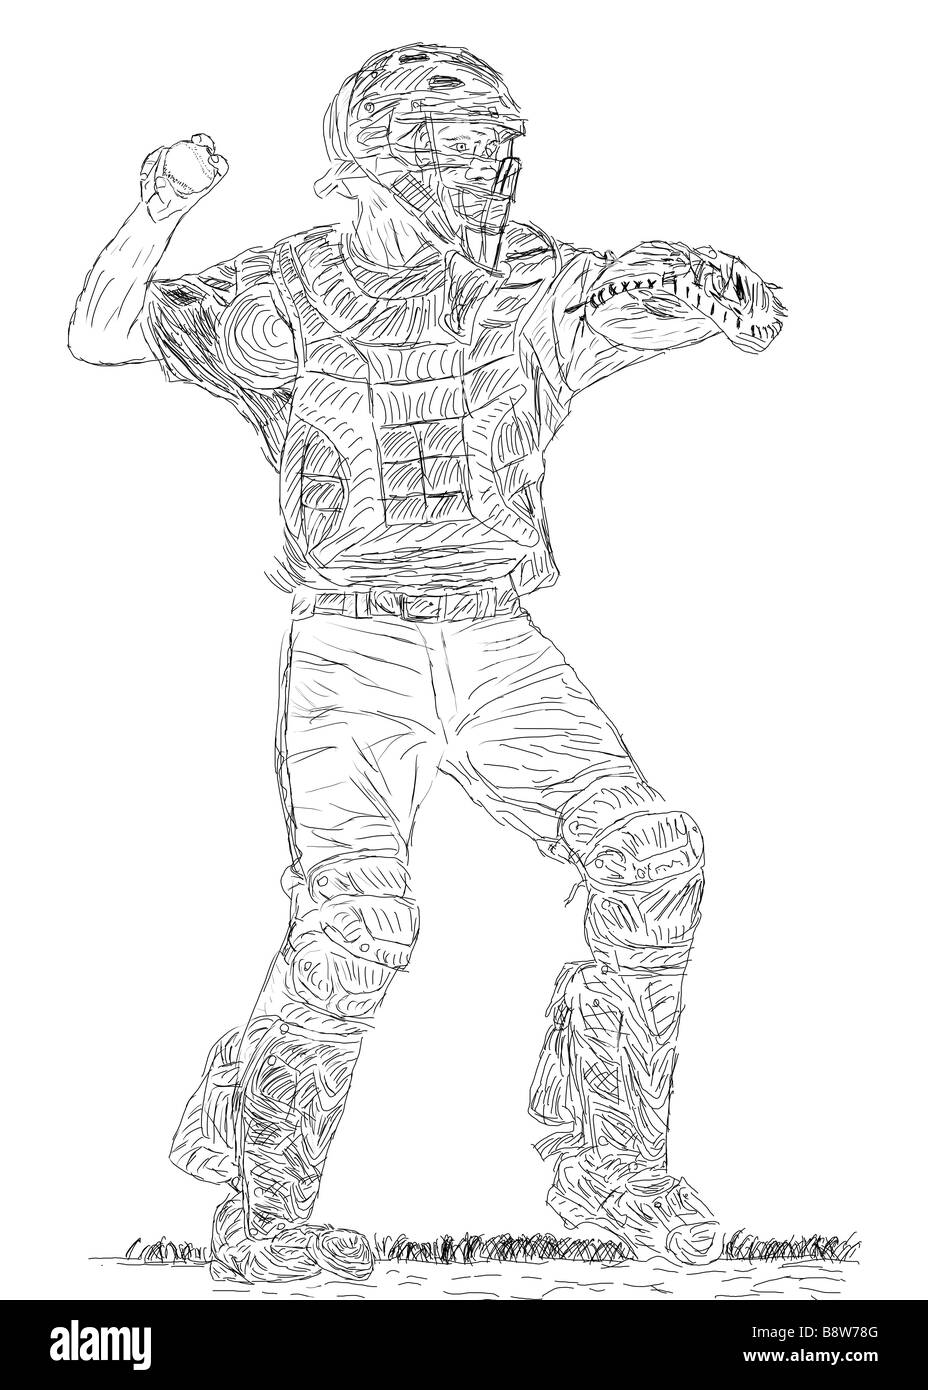 Pen And Ink Drawing Of A Baseball Catcher About To Throw The Ball